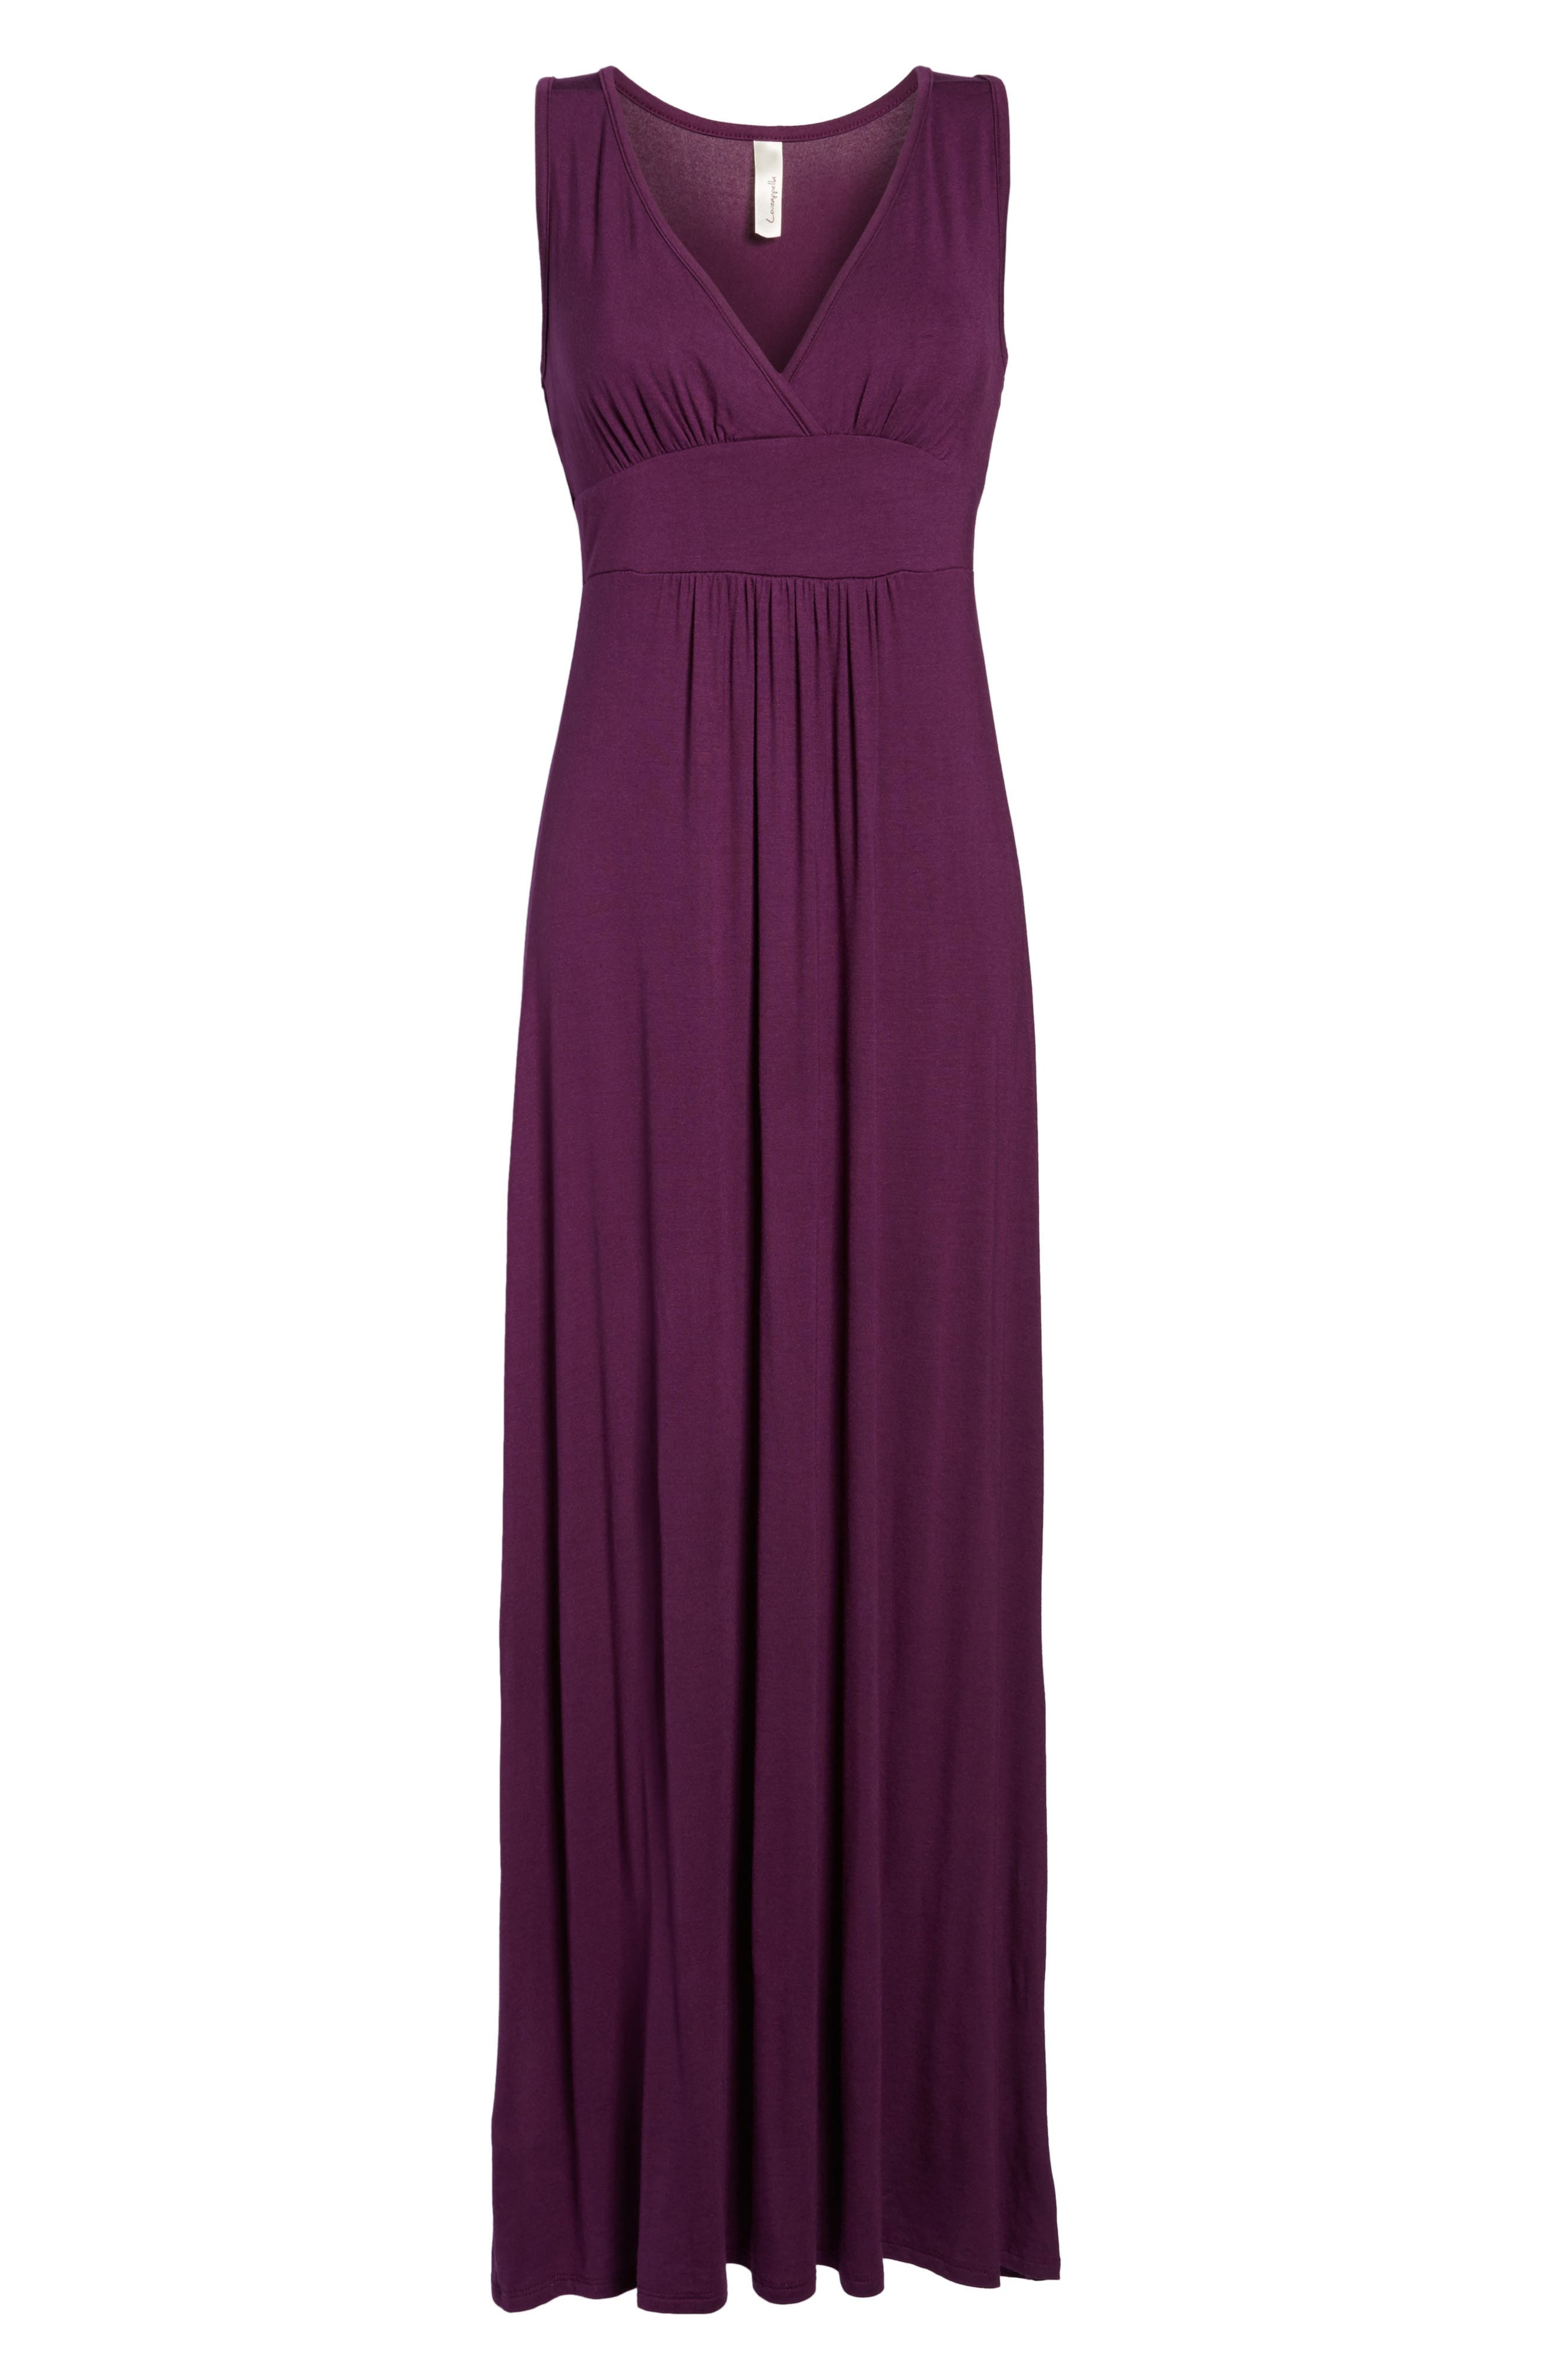 V-Neck Jersey Maxi Dress,                             Alternate thumbnail 6, color,                             PURPLE DARK